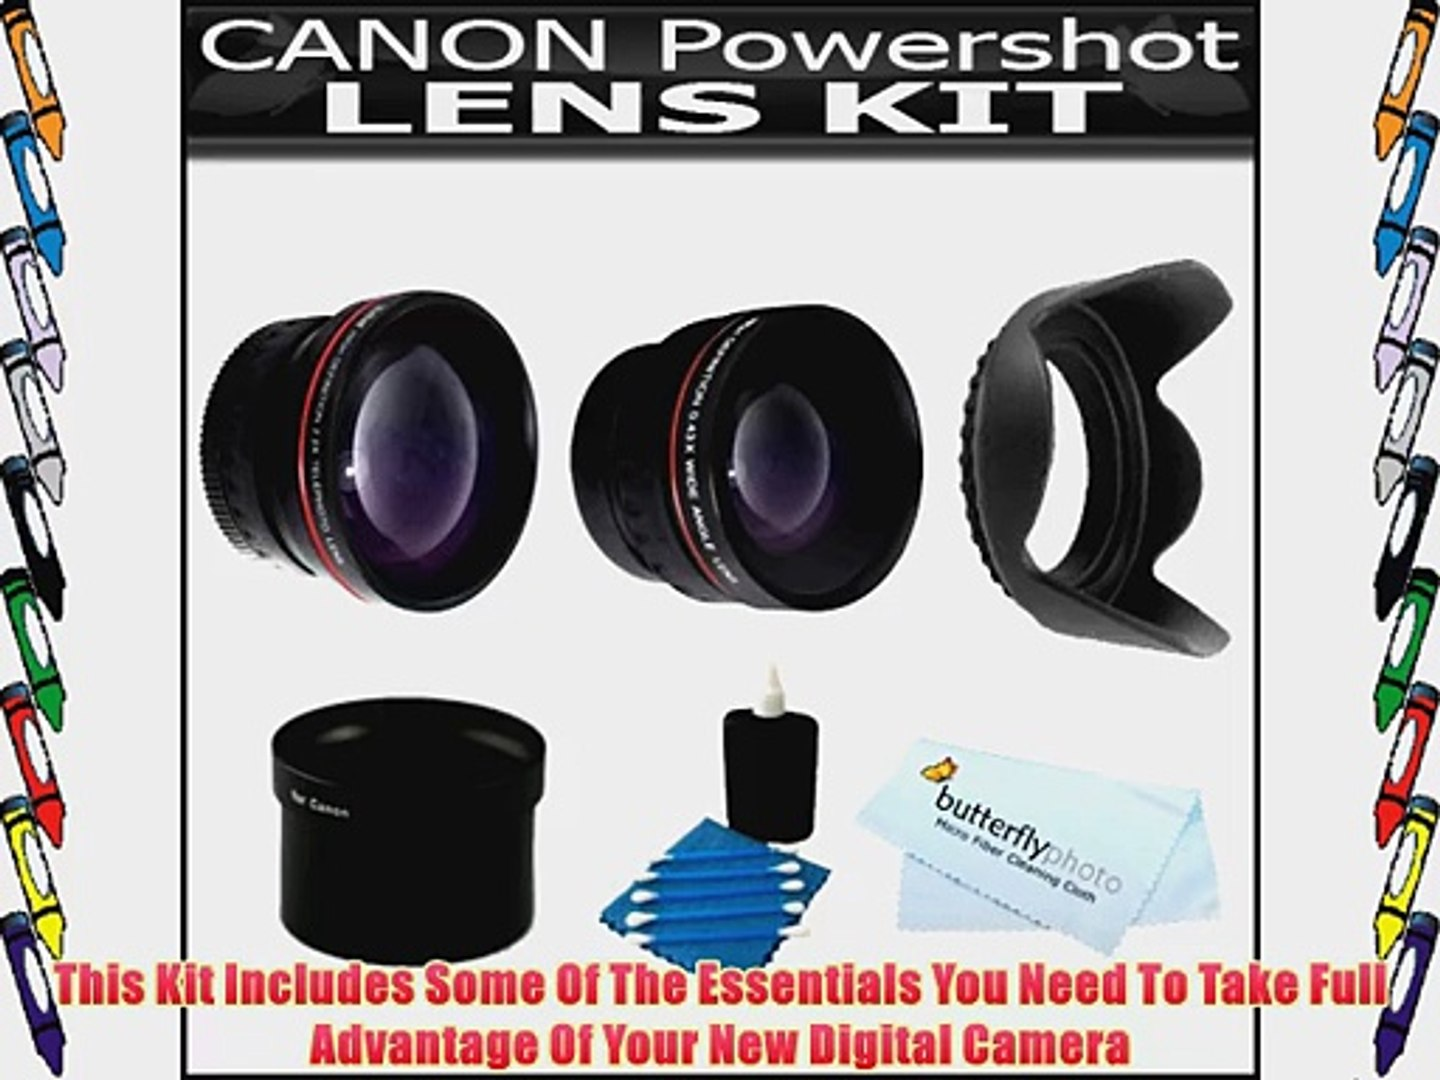 iConcepts 2.0x High Definition Telephoto Conversion Lens for Canon Powershot A650 IS Includes Lens Adapter